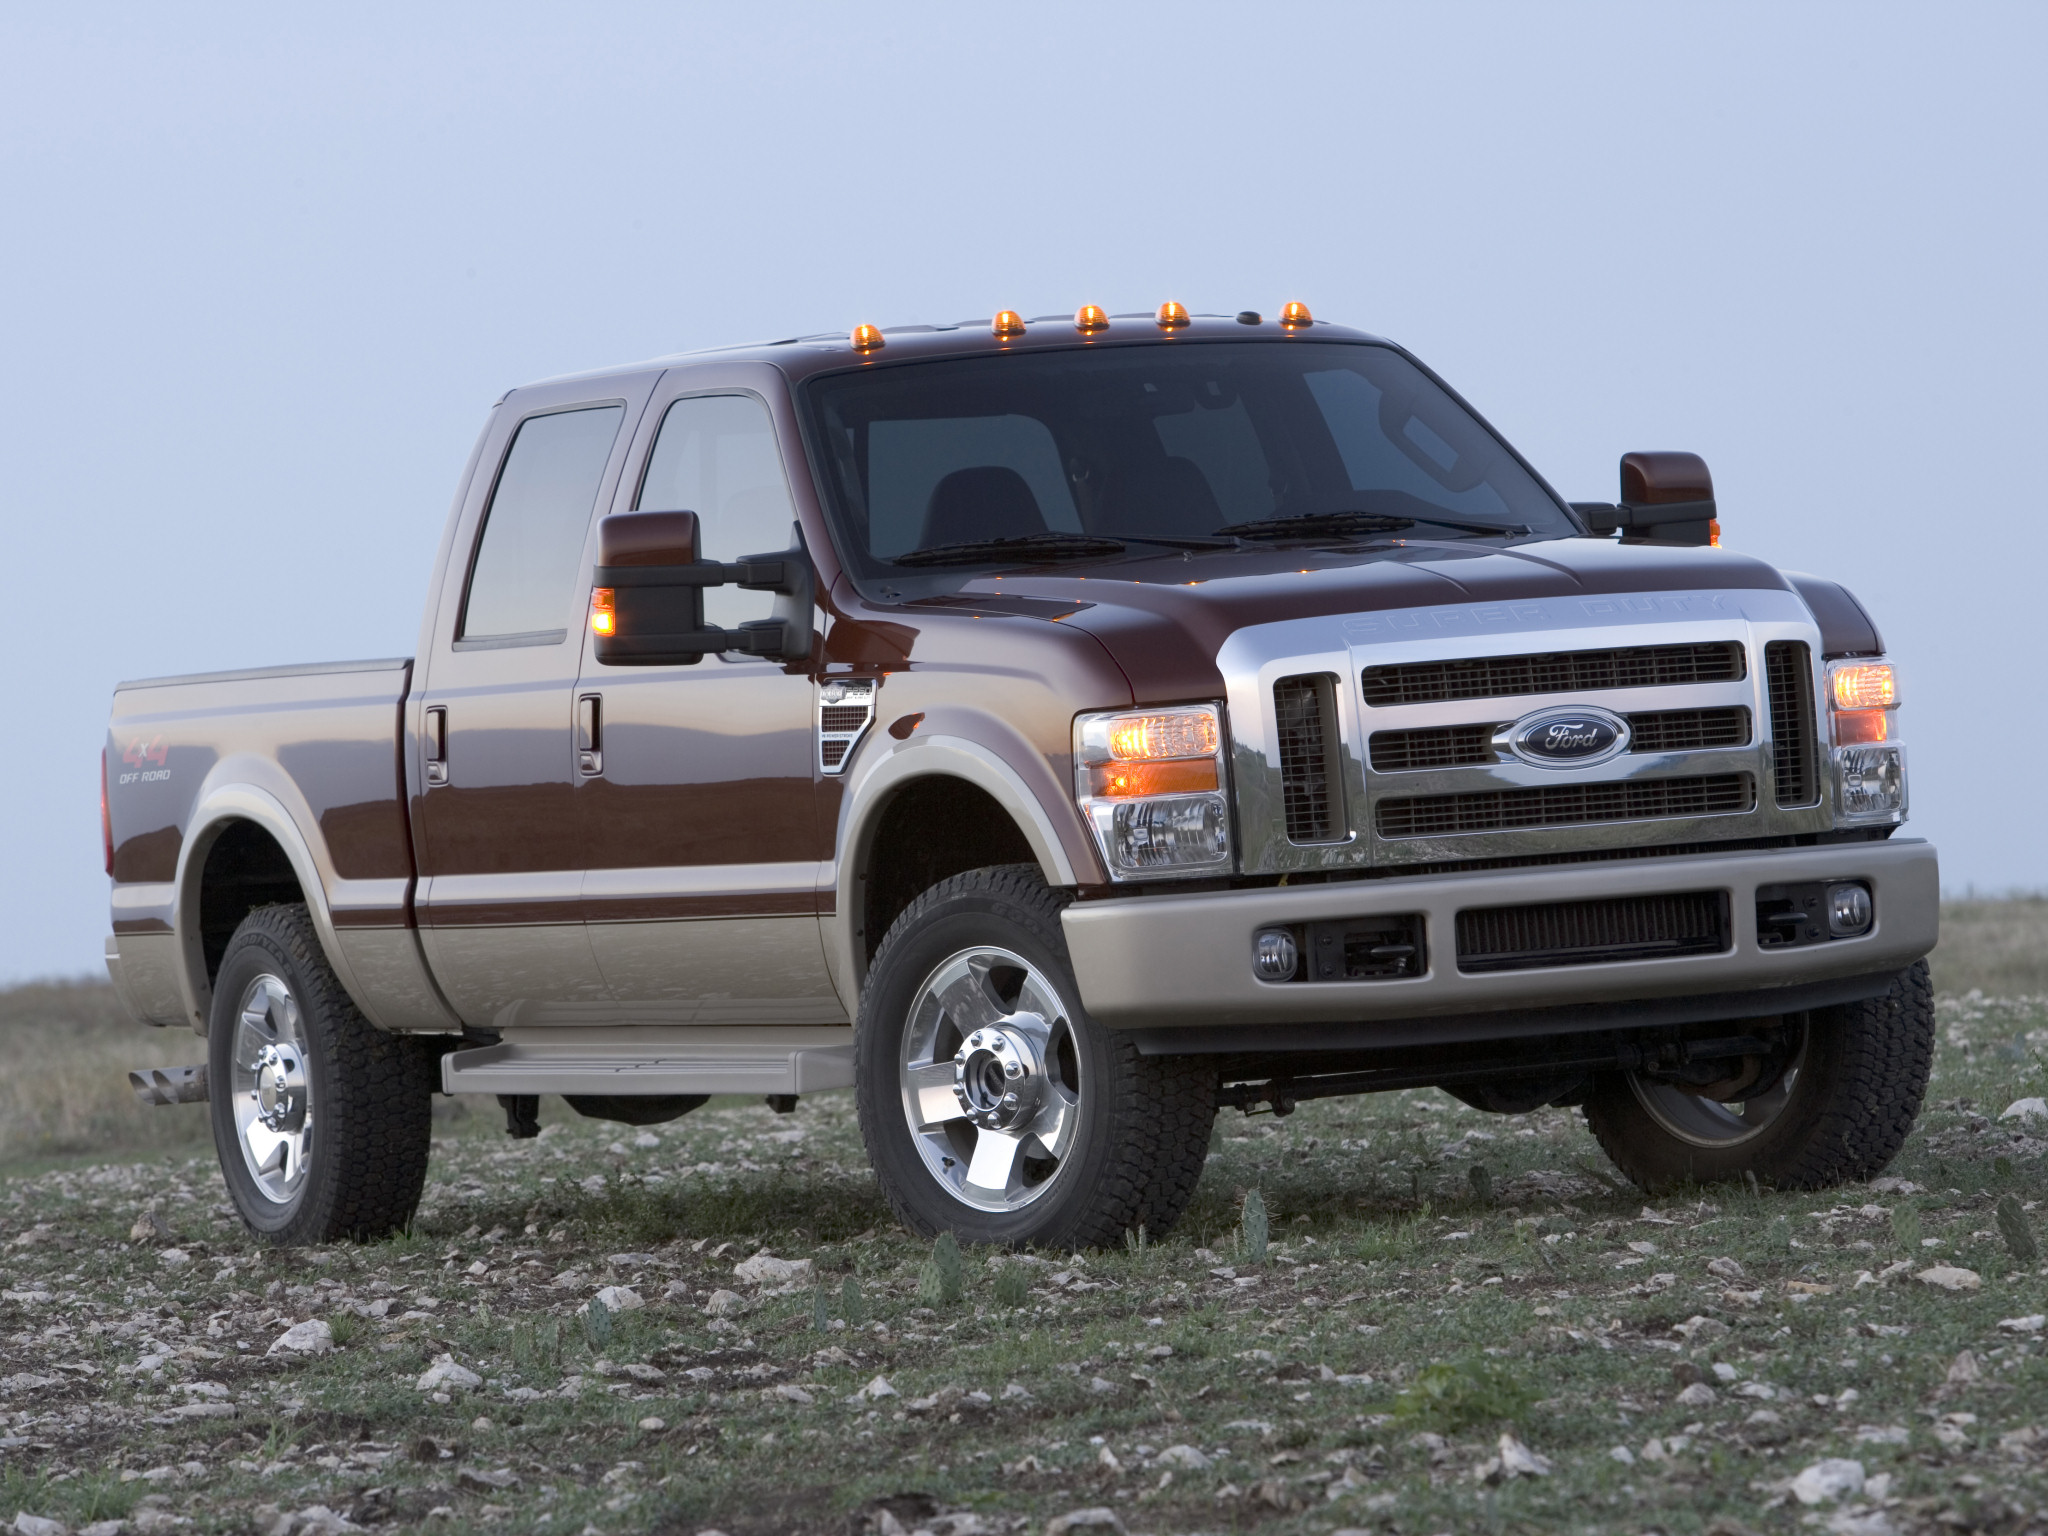 Ford F-250 Super Duty #7